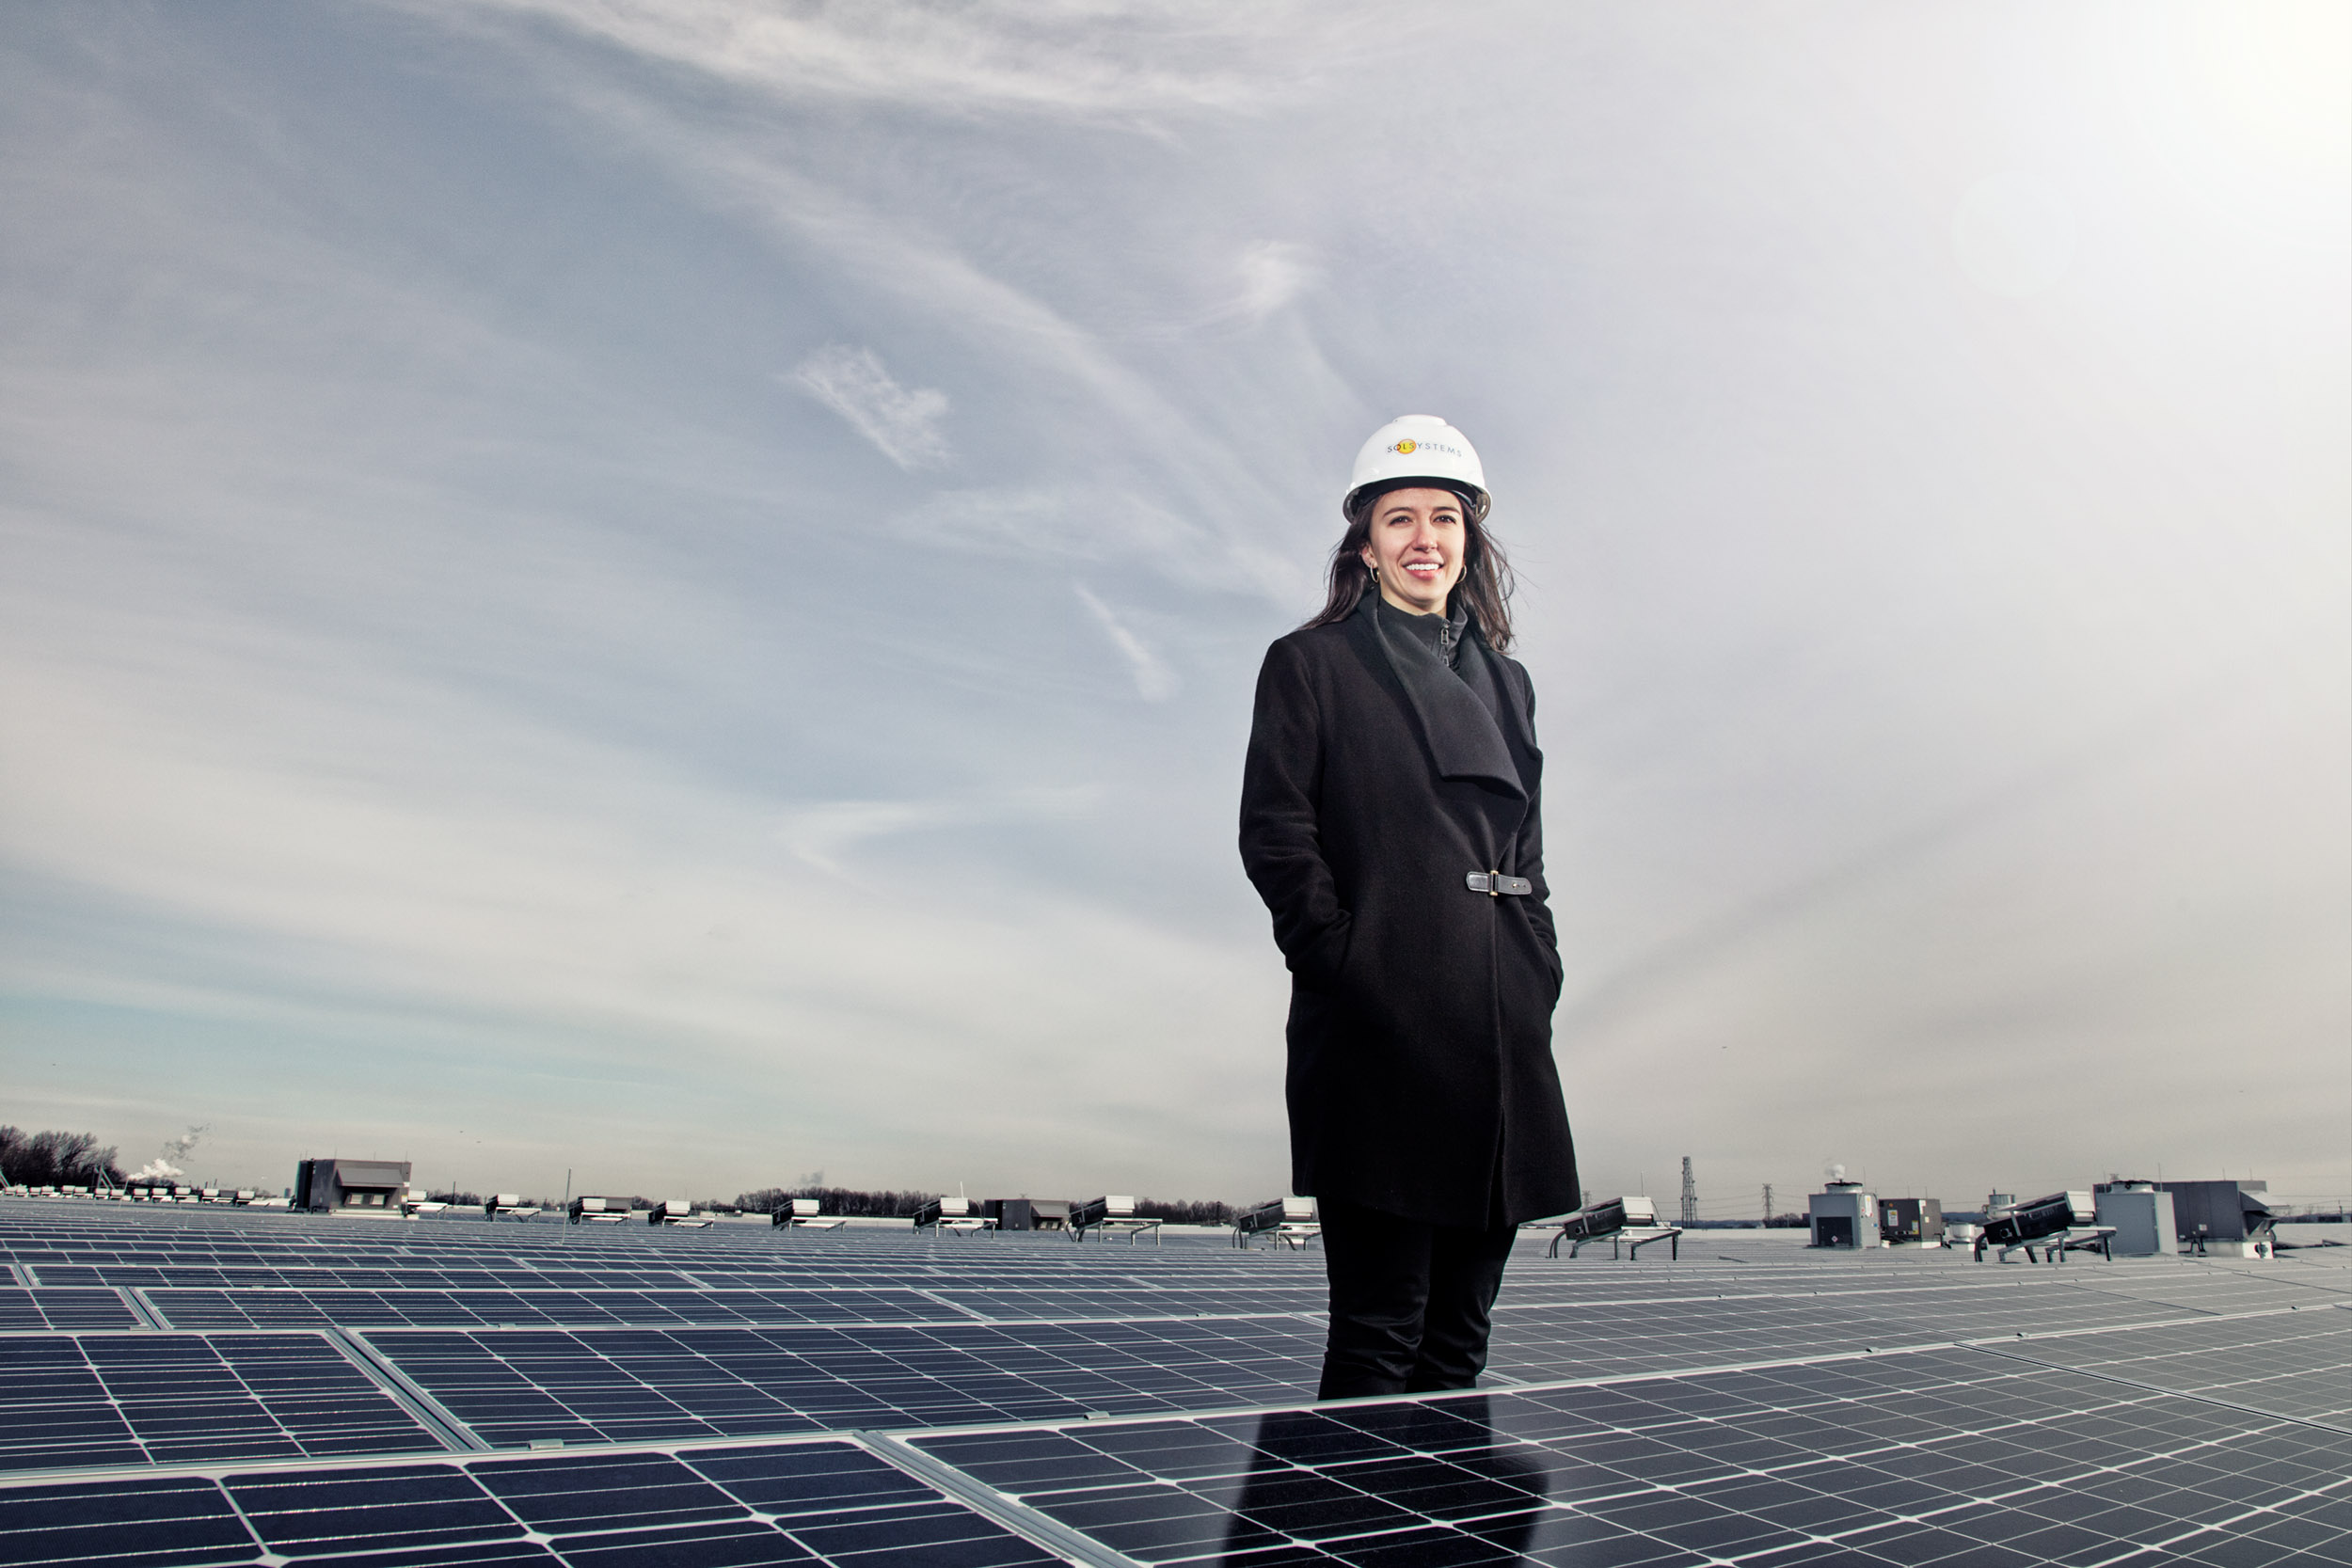 39_solar_energy_corporate_portrait_female_engineer_advertising_photography.jpg